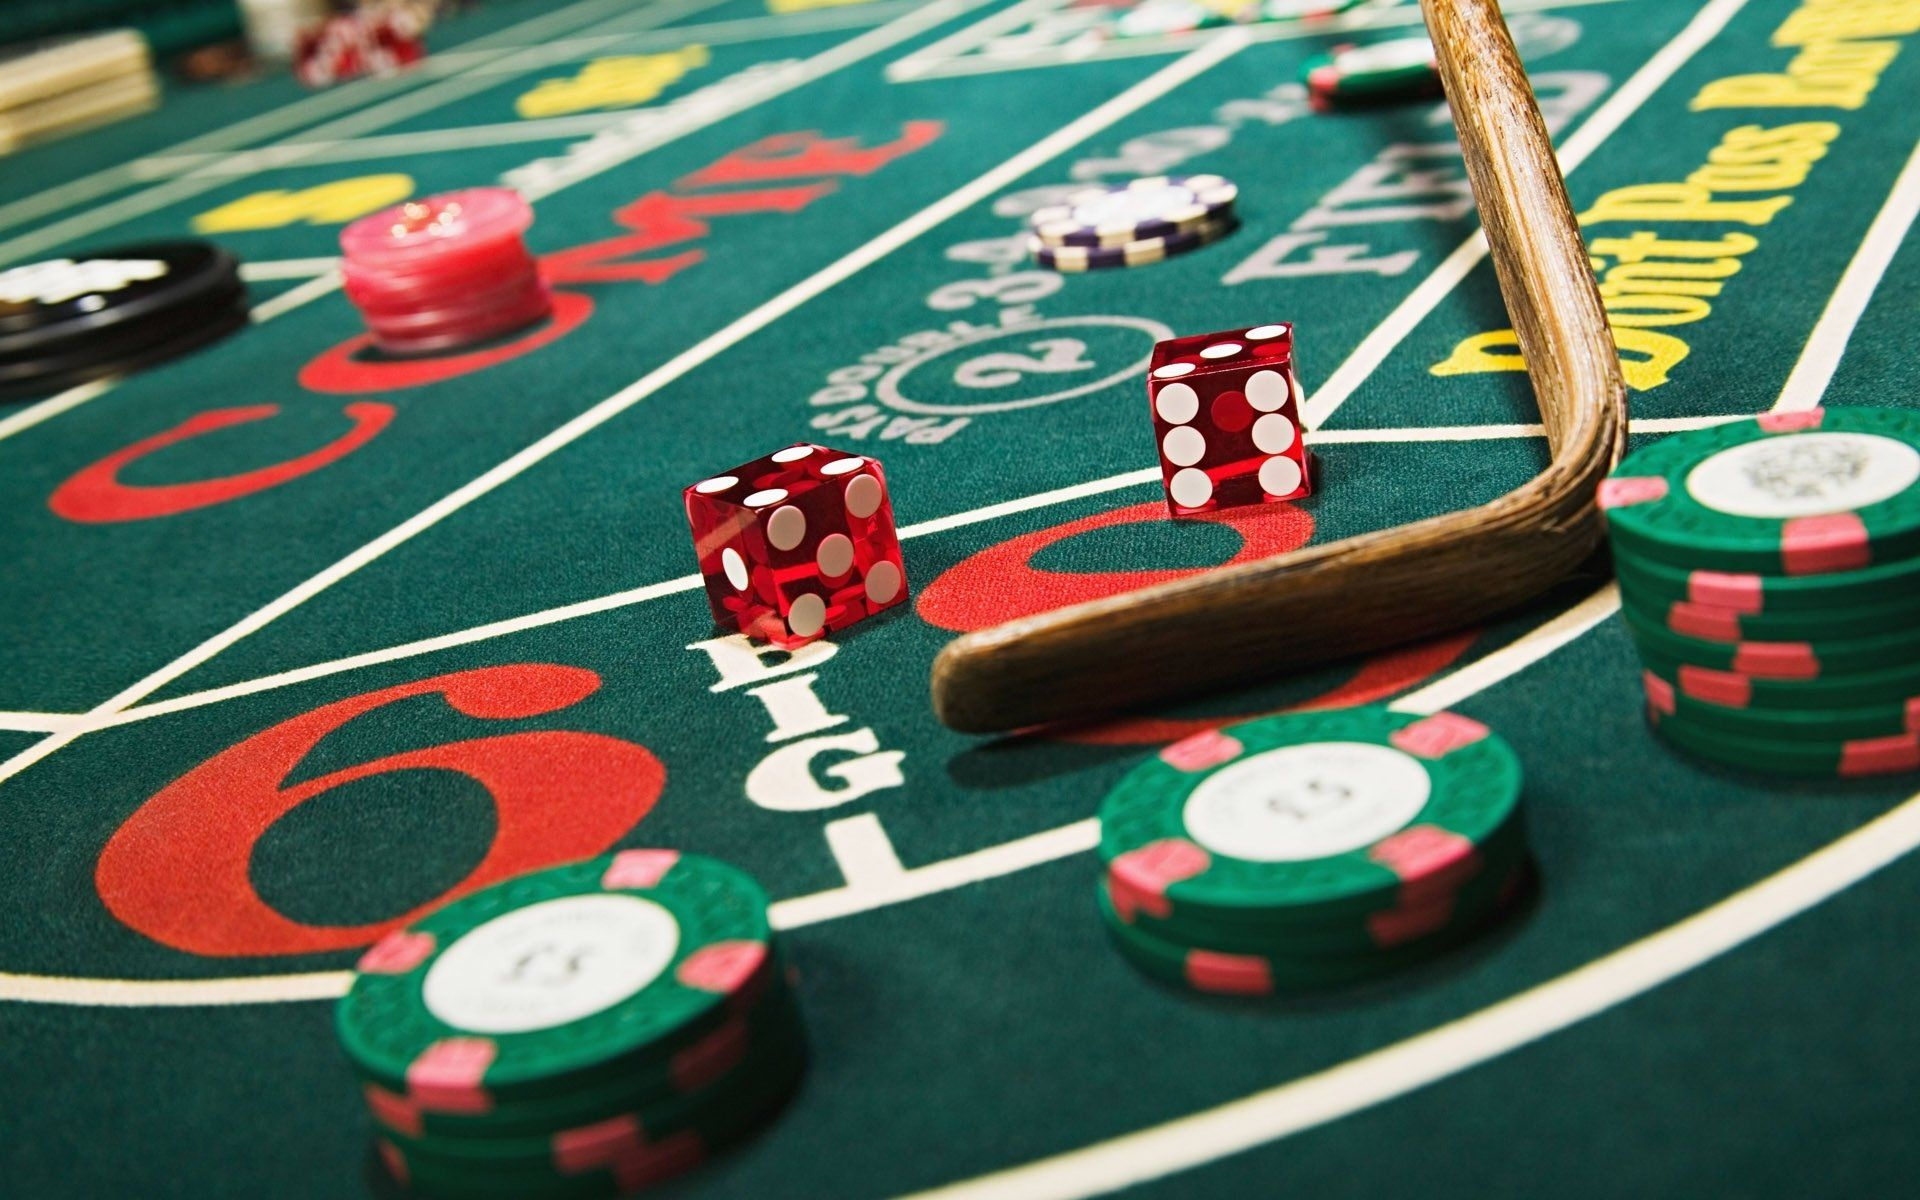 Six Methods Facebook Destroyed My Casino WithOut Me Noticing